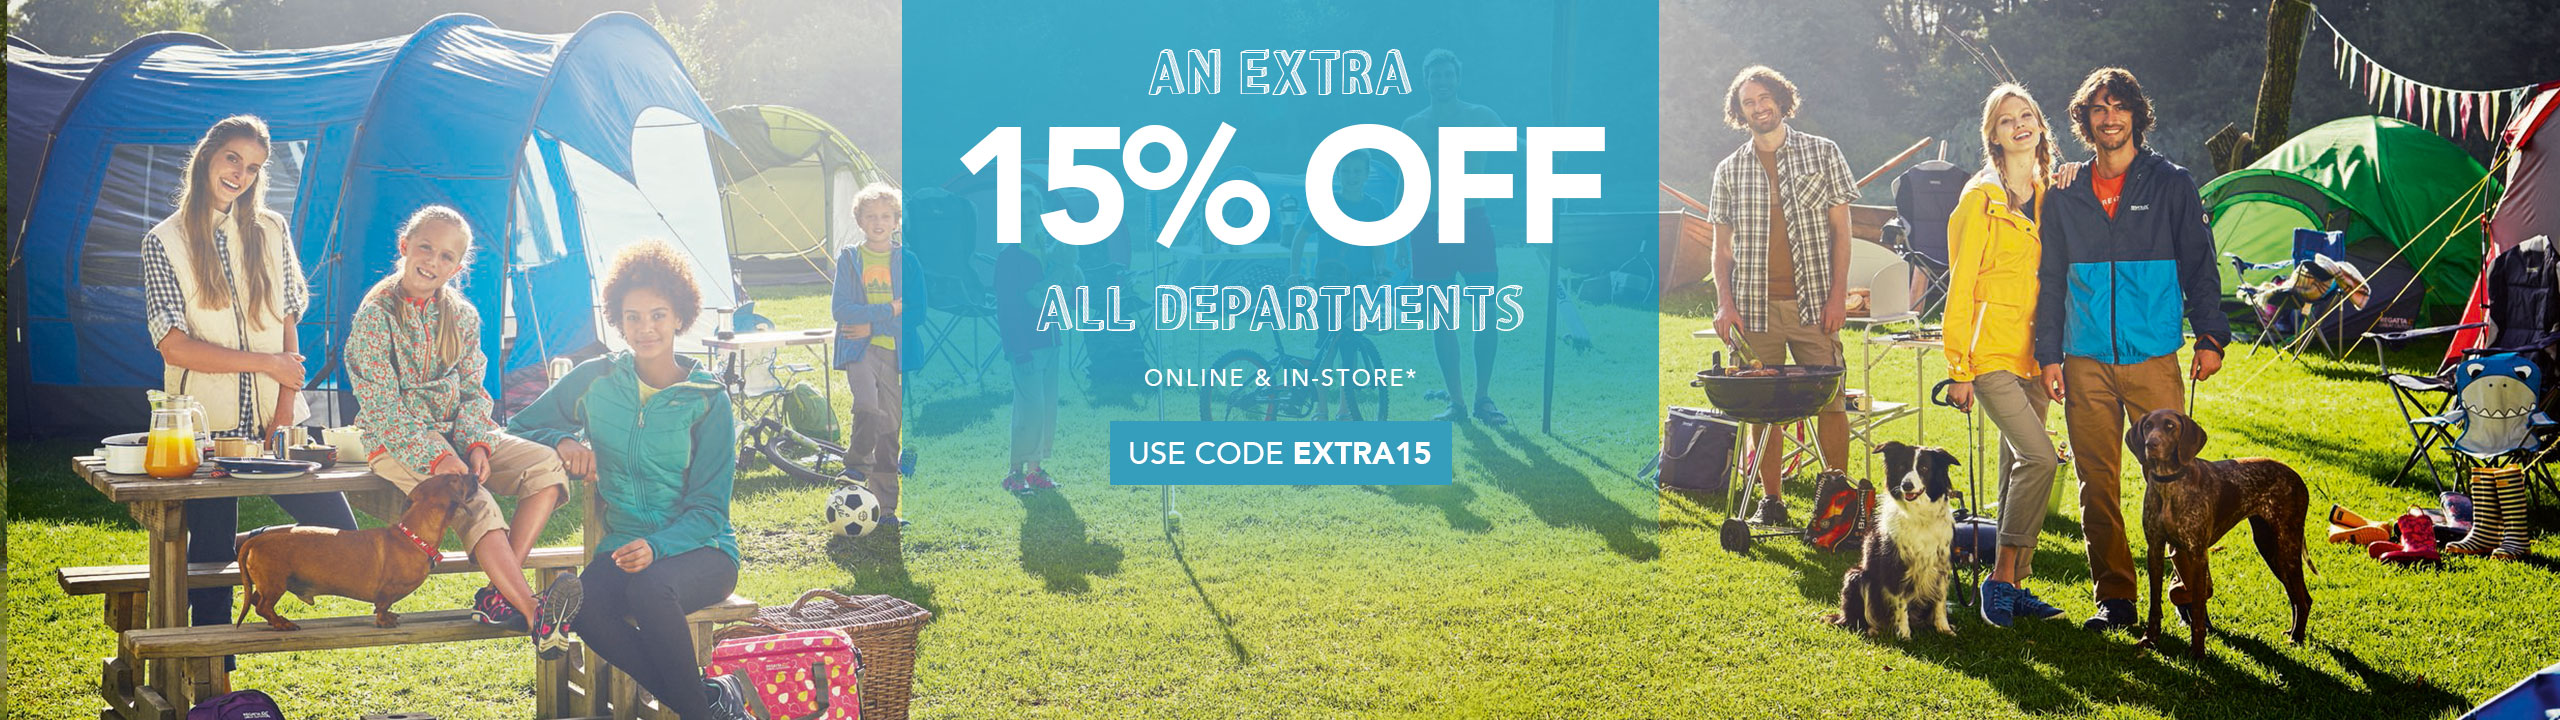 Extra 15% Off All Departments